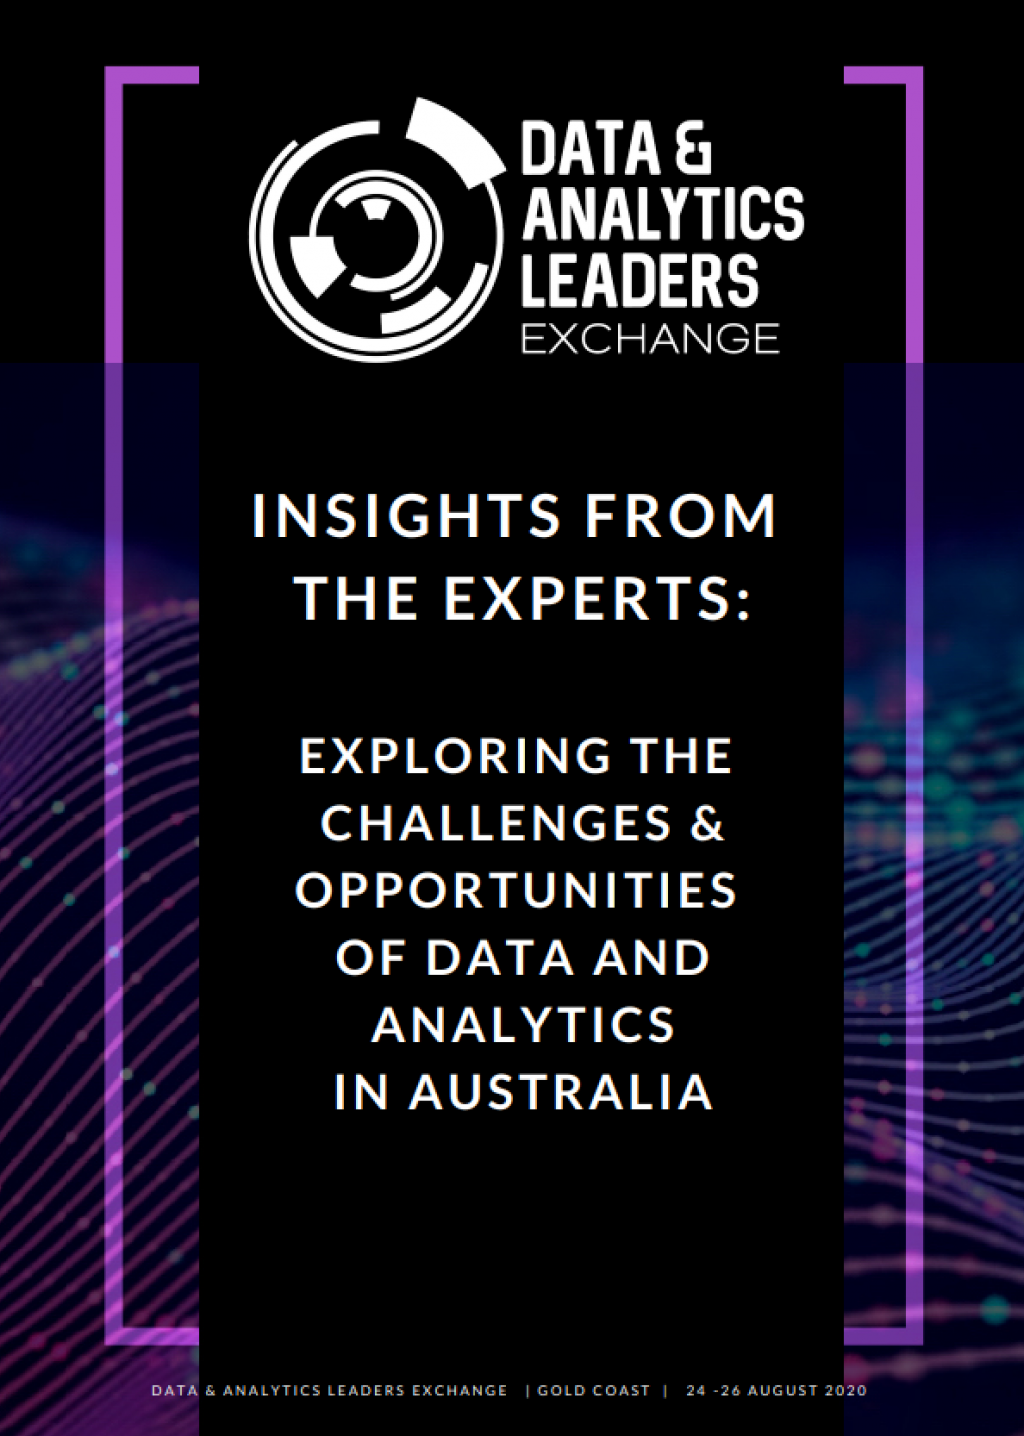 Data & Analytics Leaders Exchange 2020 - Insights from the Experts